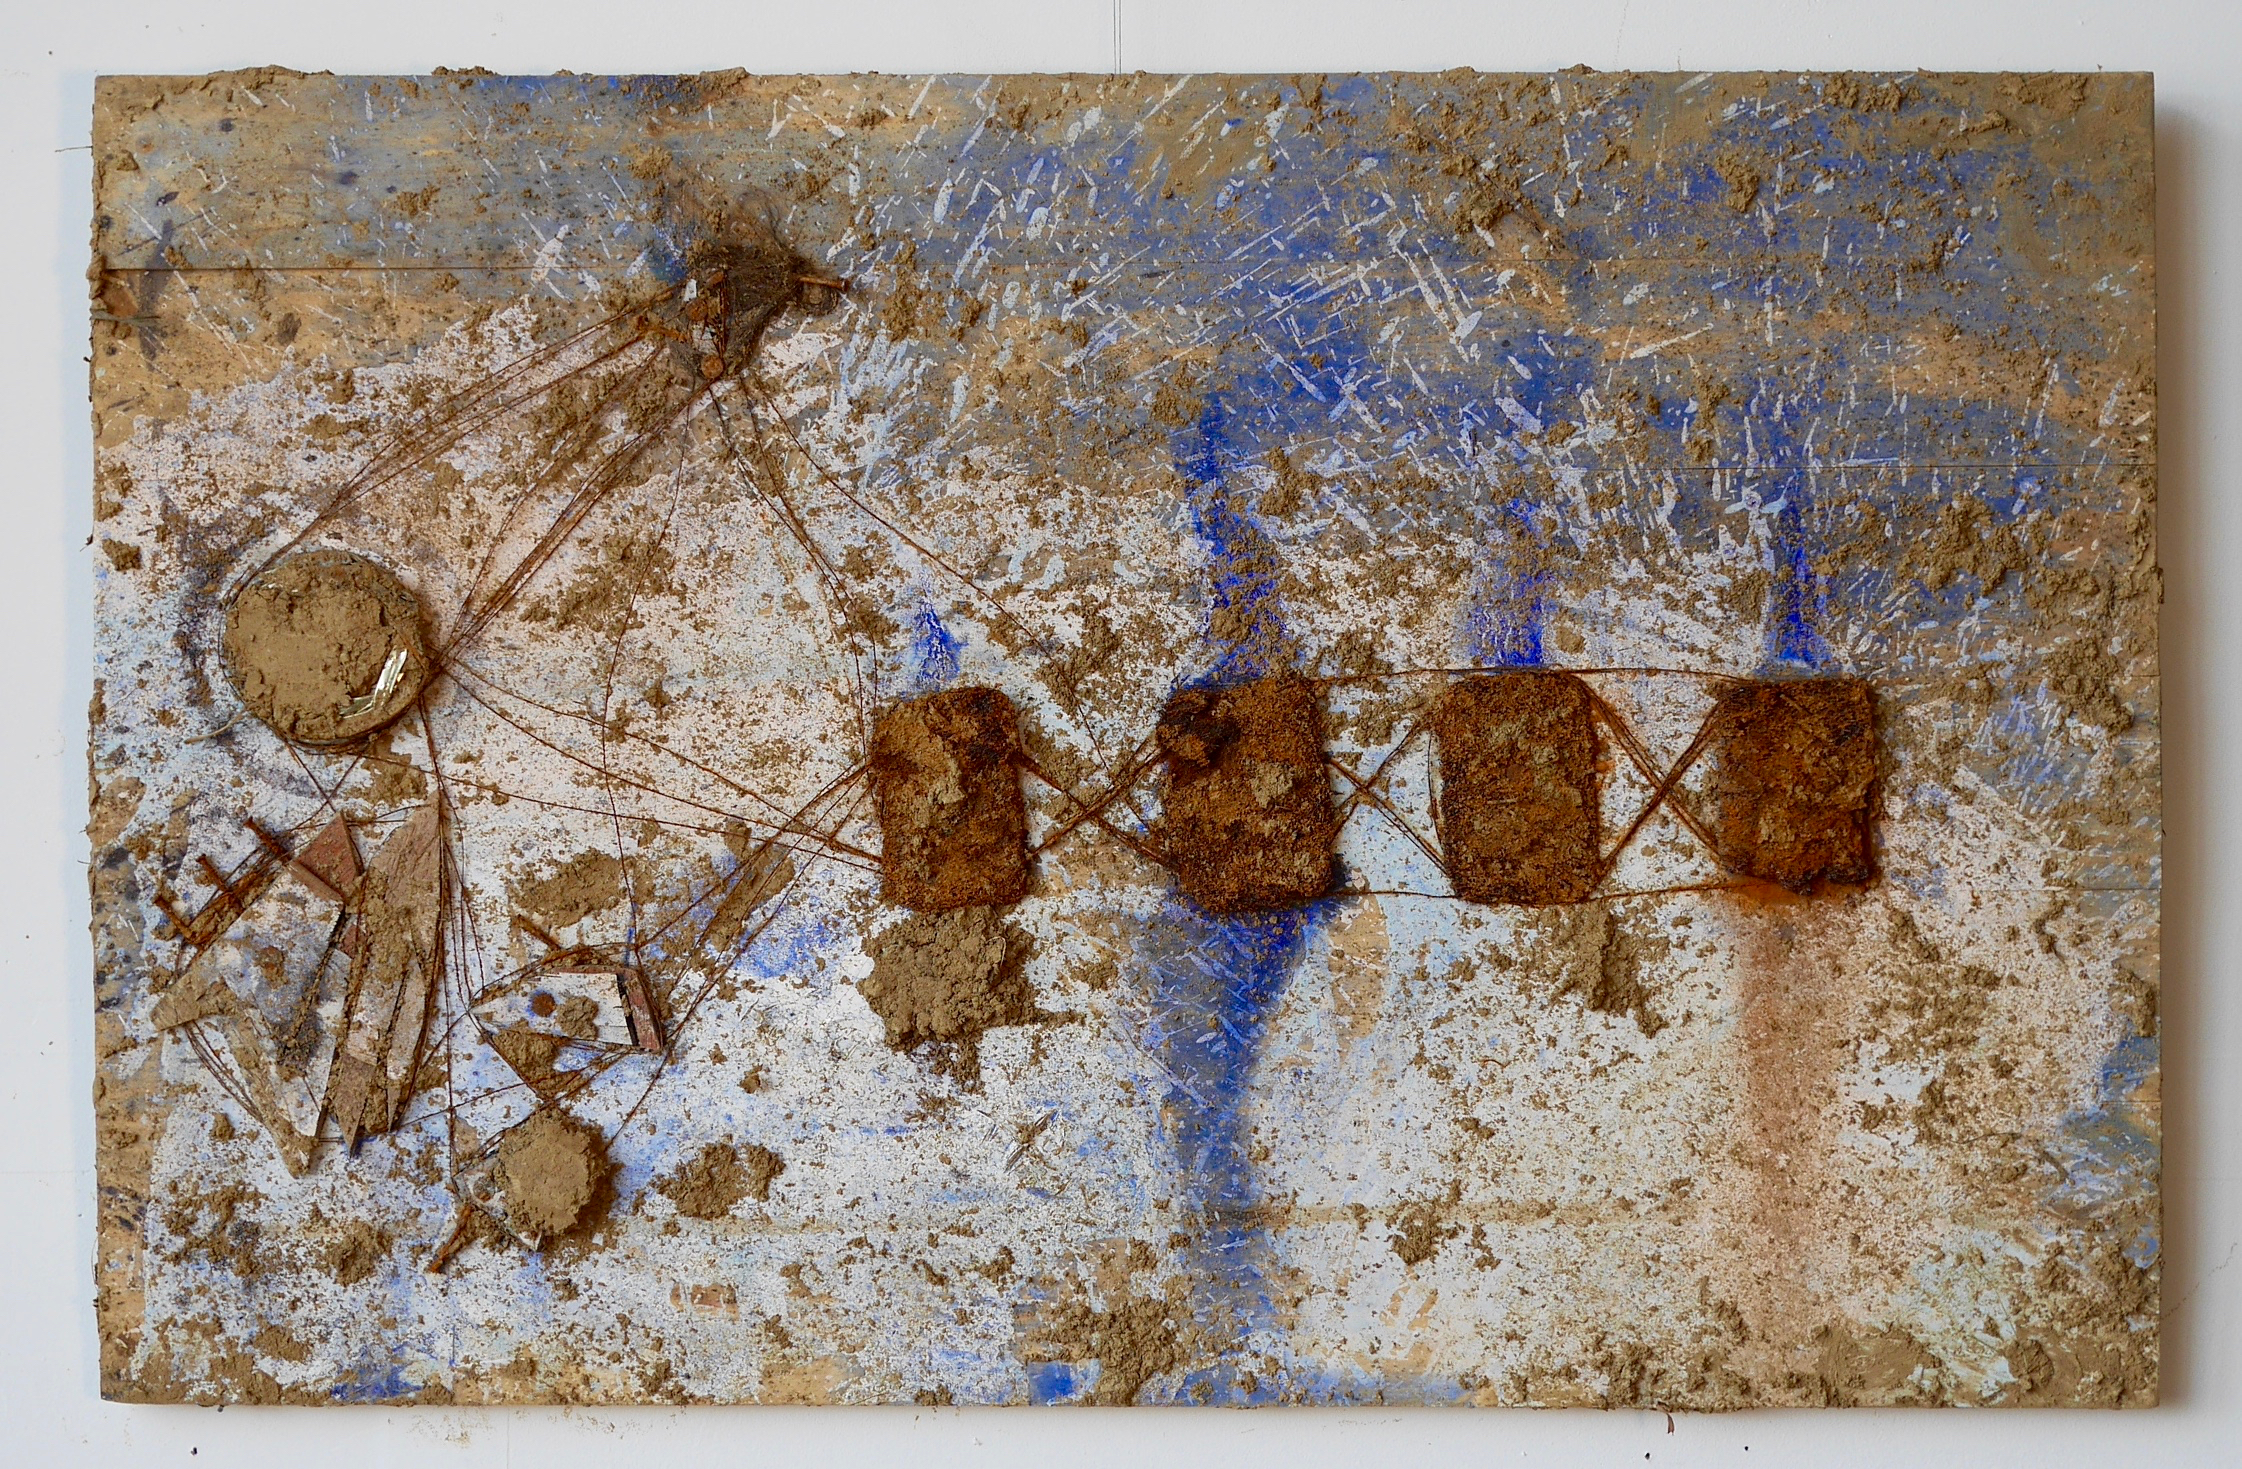 """Number 4 - What They Brought With Them  24"""" x 32""""  Hair, steel wool pads, pink glass beads, concealer, crushed can, nails, wood, acrylic, milk, vinegar, salt, ink, dye, white flour, steel wire, staples, rust, dirt, mold on wood  (2015)"""